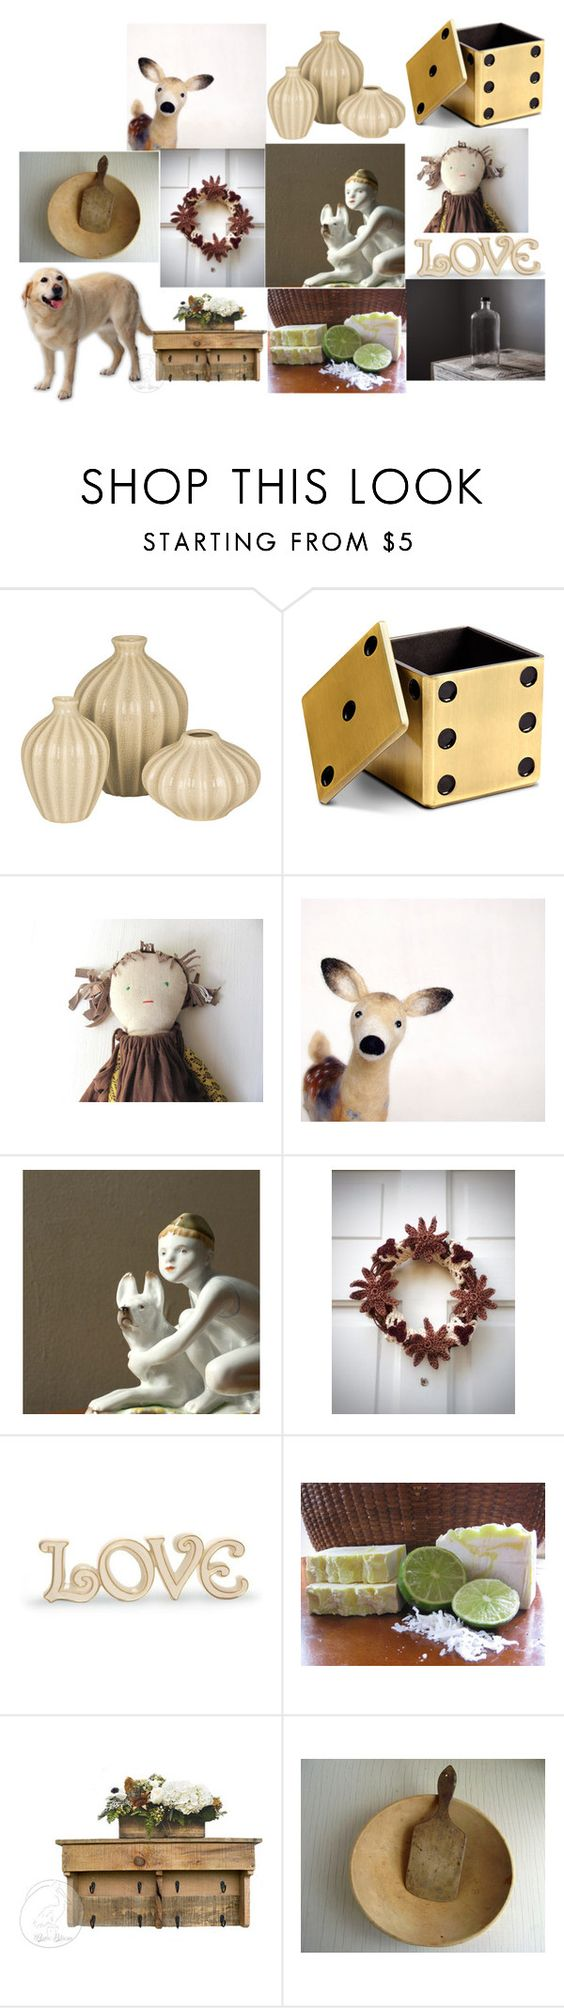 """Home"" by talma-vardi on Polyvore featuring interior, interiors, interior design, home, home decor, interior decorating, Broste Copenhagen, L'Objet and Lenox"